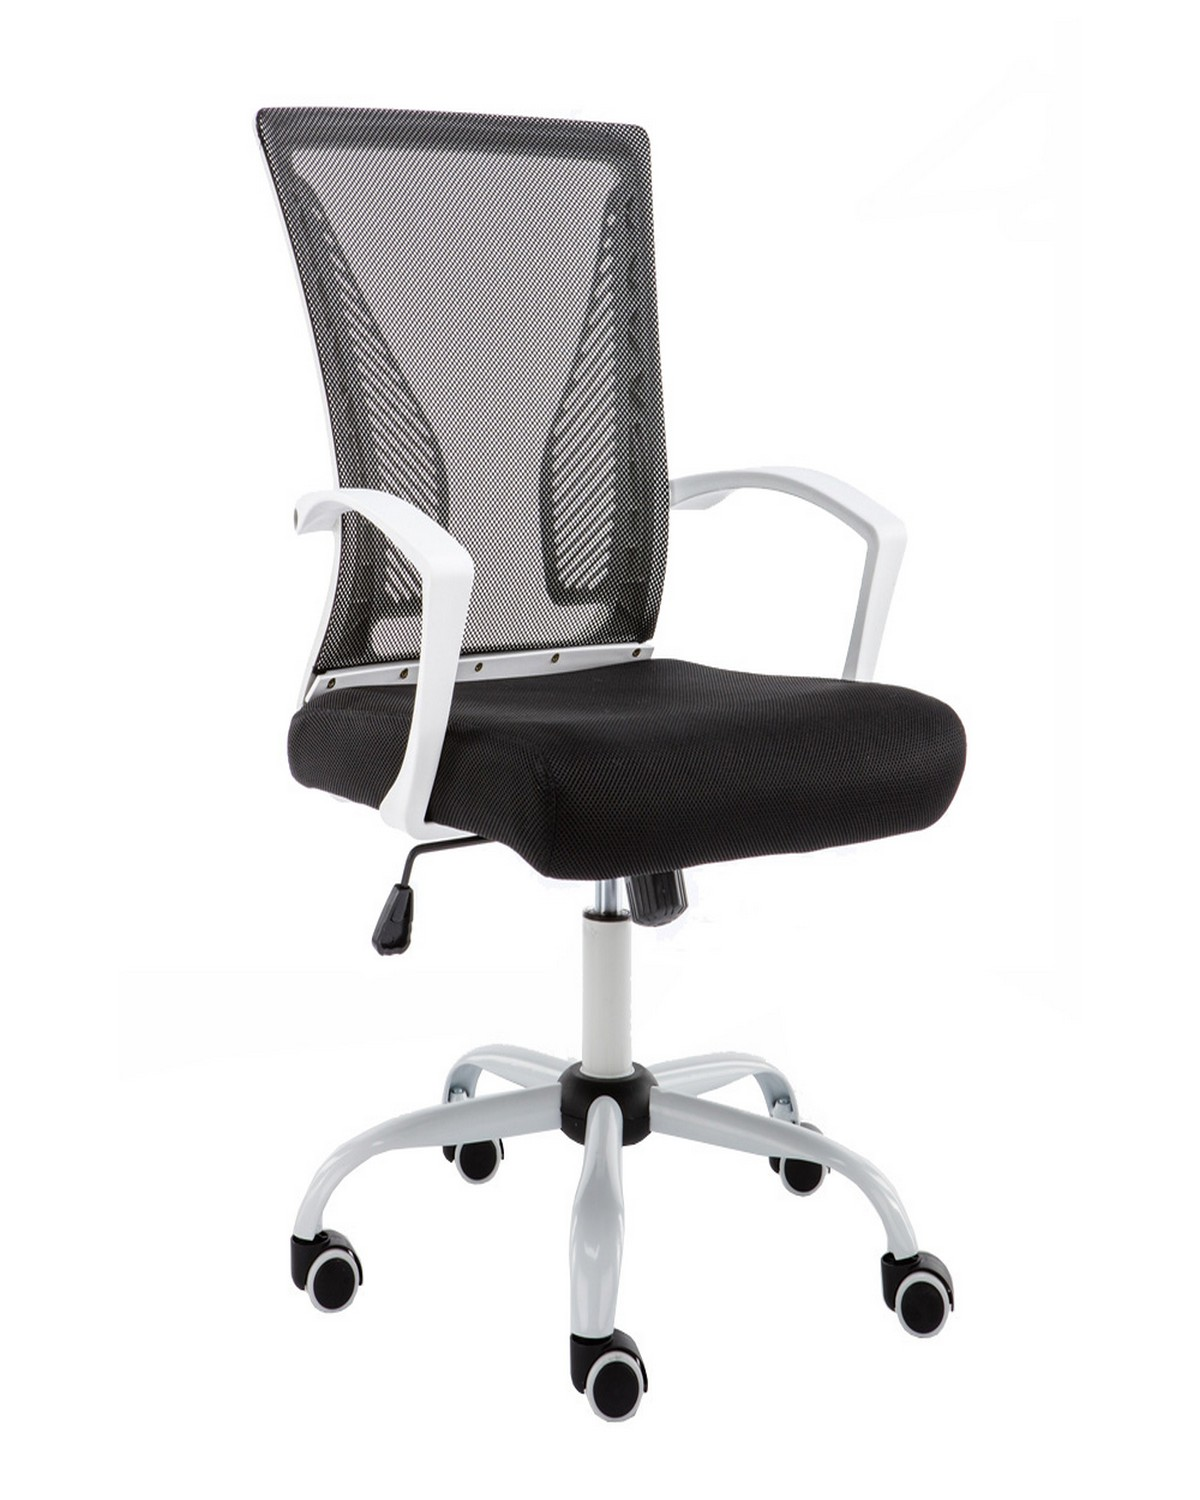 details about new zuna office desk chair mid back mesh task chair